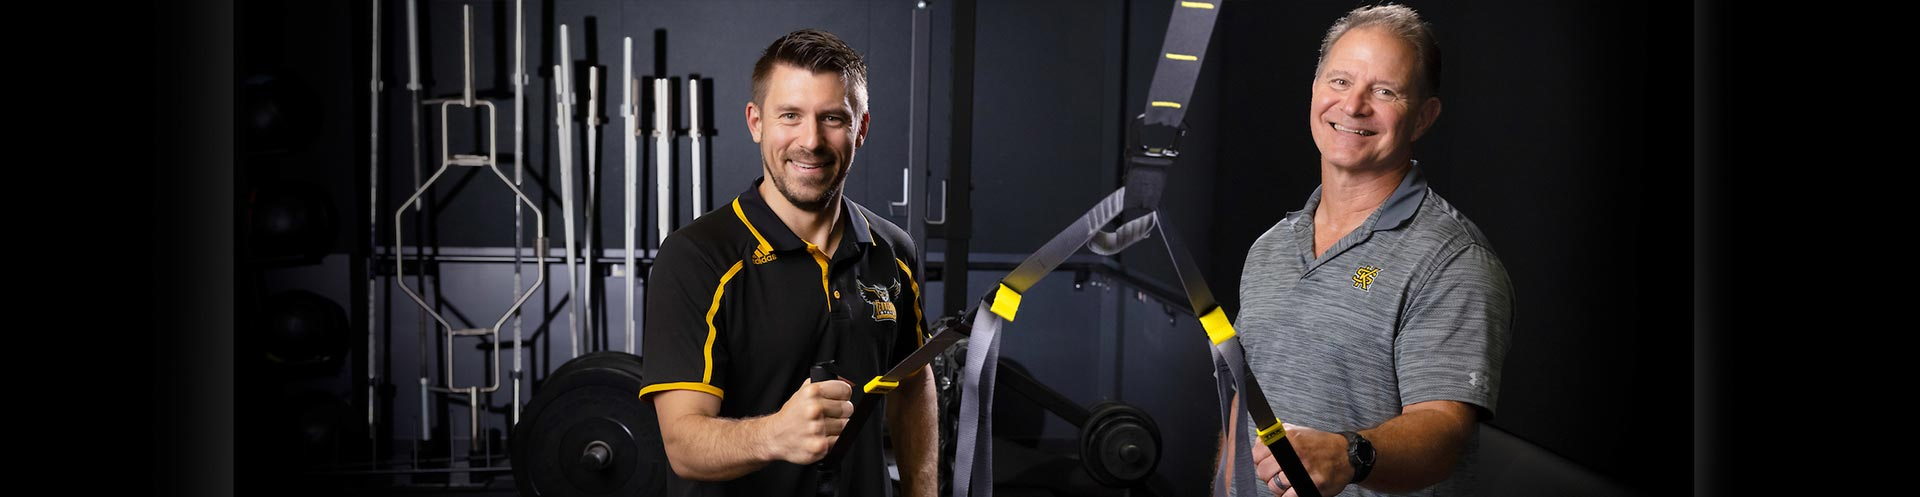 Kennesaw State researchers to explore exercise interventions in treating Type 2 diabetes